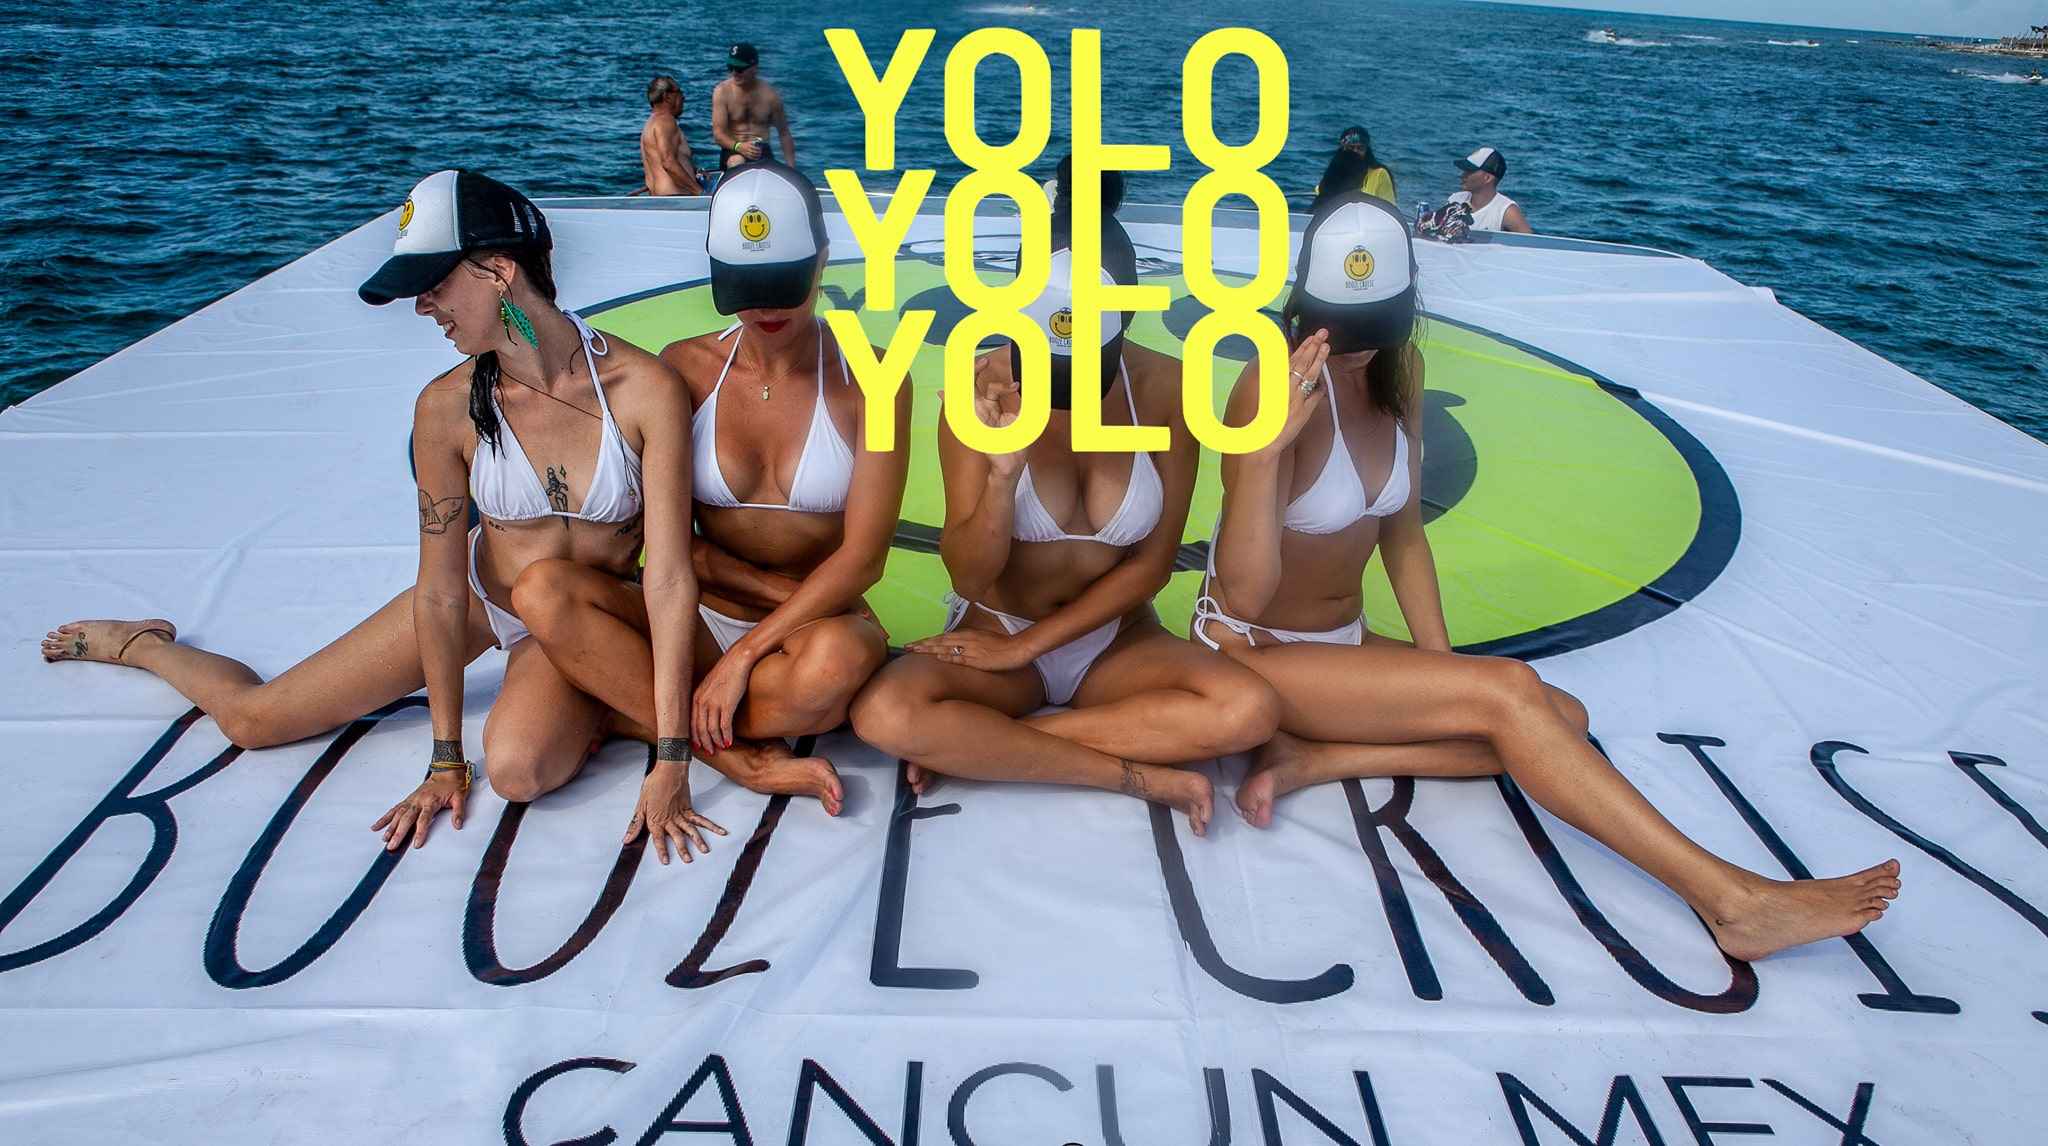 yolo-booze-cruise-cancun